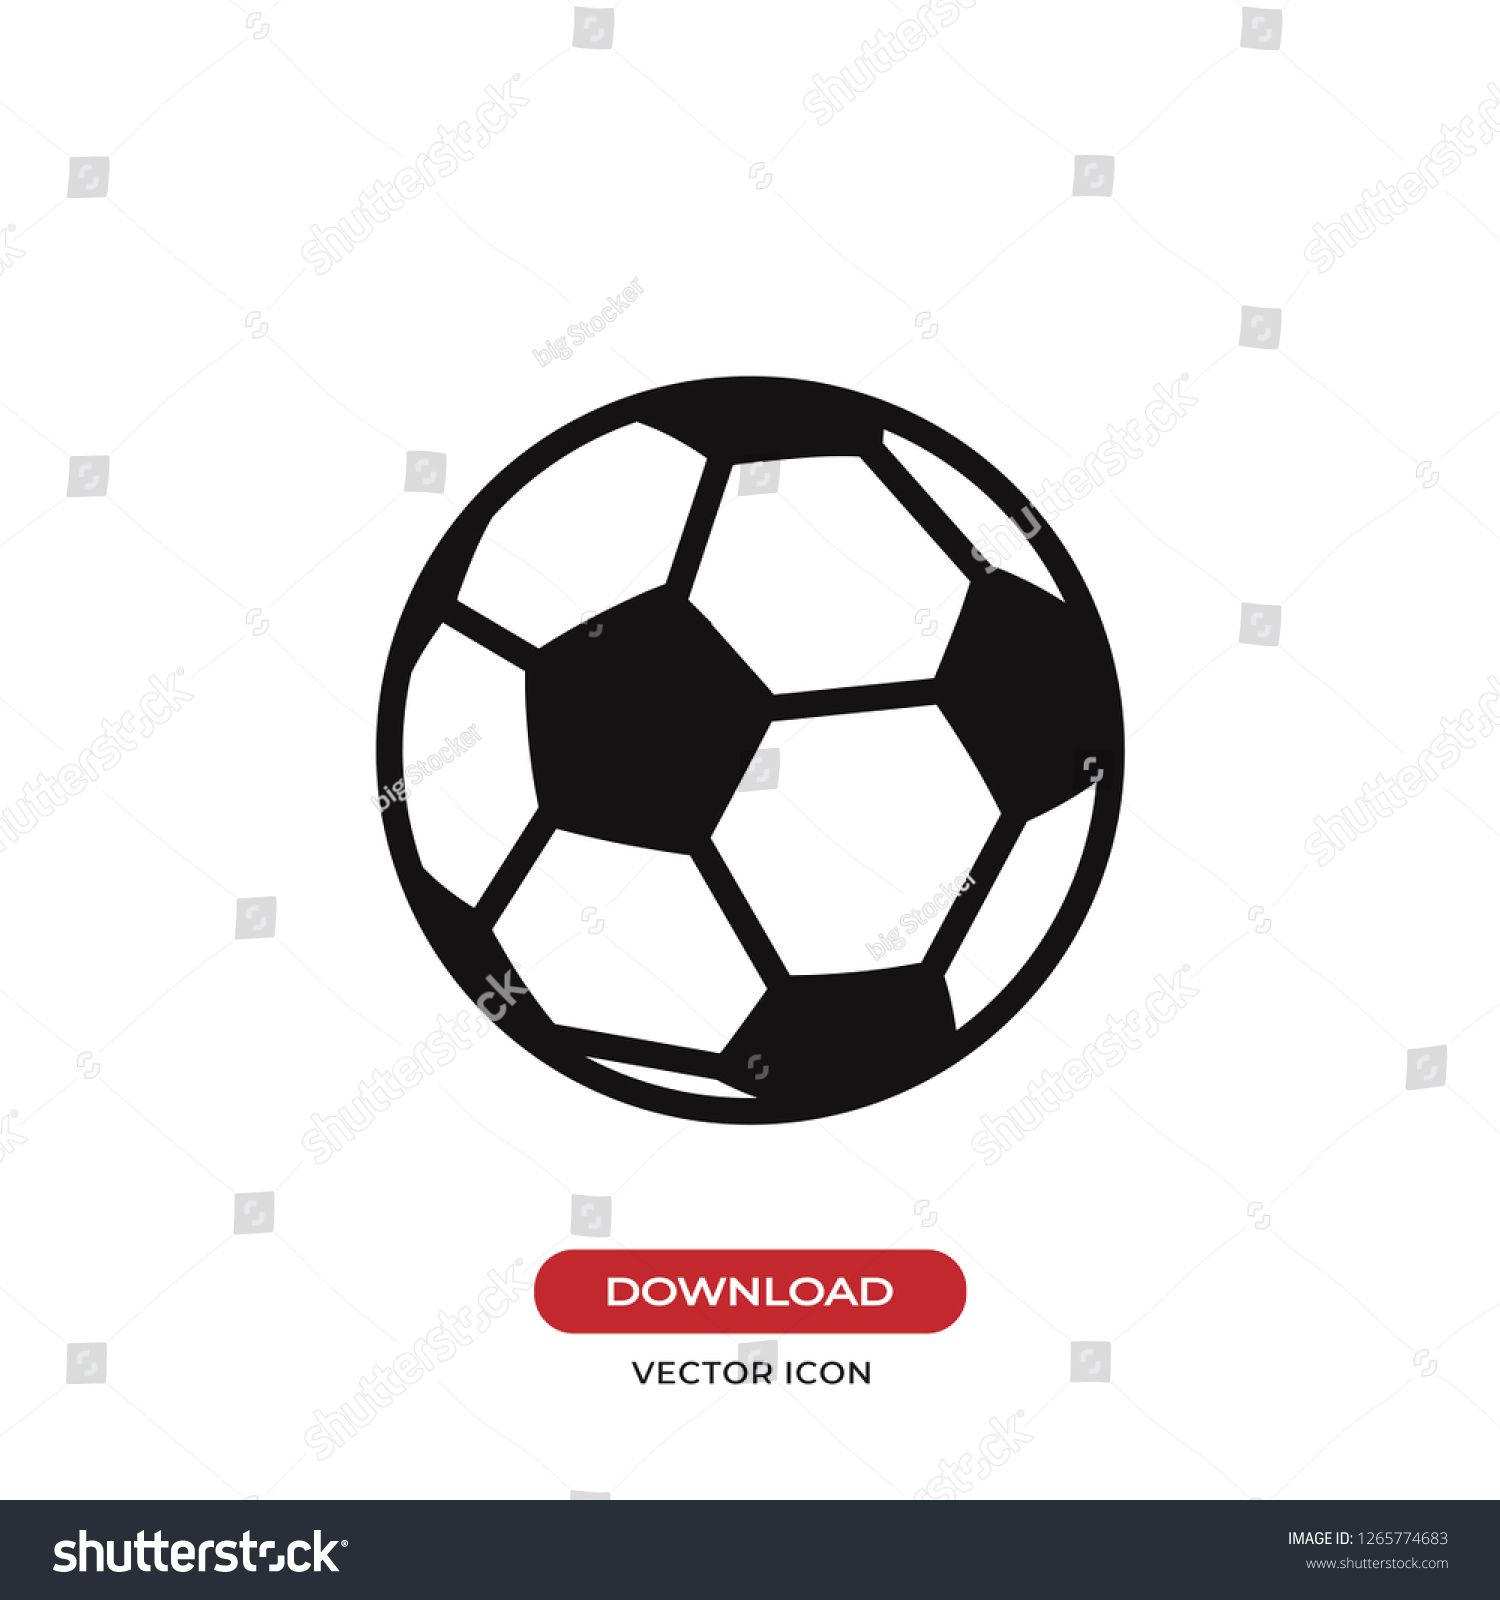 Soccer Player Running With The Ball Football Vector Art Illustration Soccer Players Soccer Workout Videos For Women